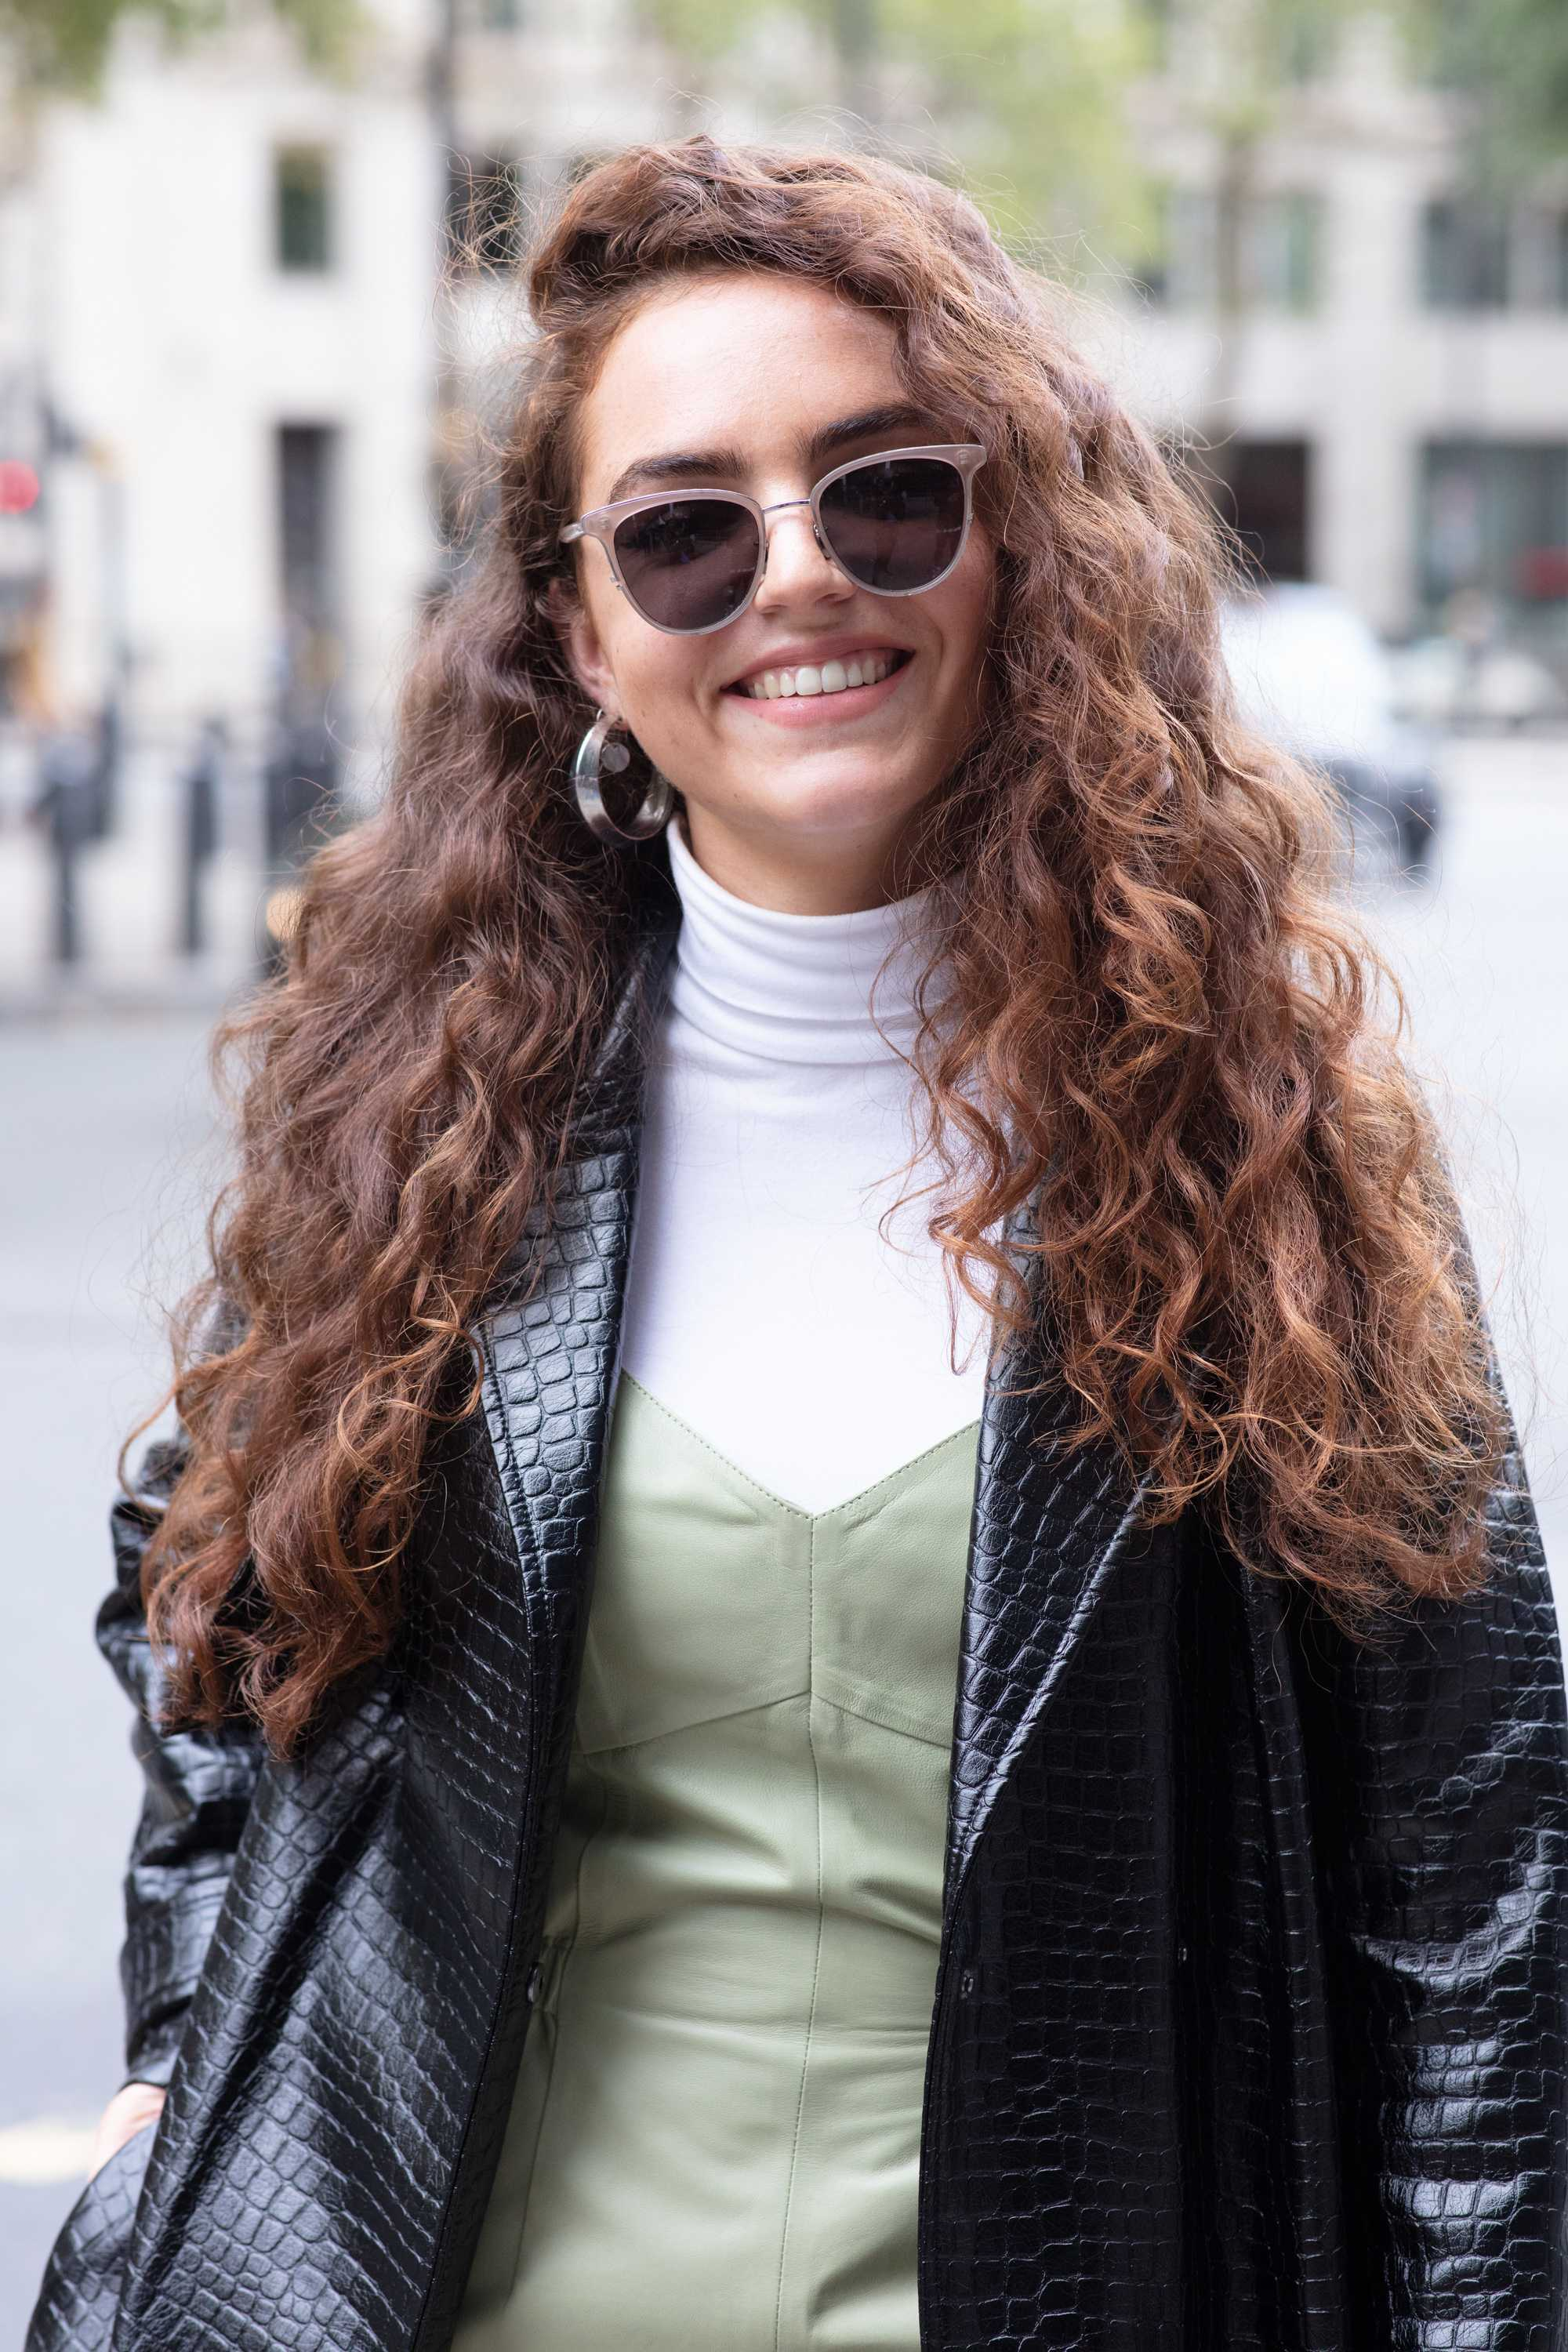 London Fashion Week street style hair: Close up shot of a woman with long chestnut brown big curls, wearing sunglasses and leather jacket on the street